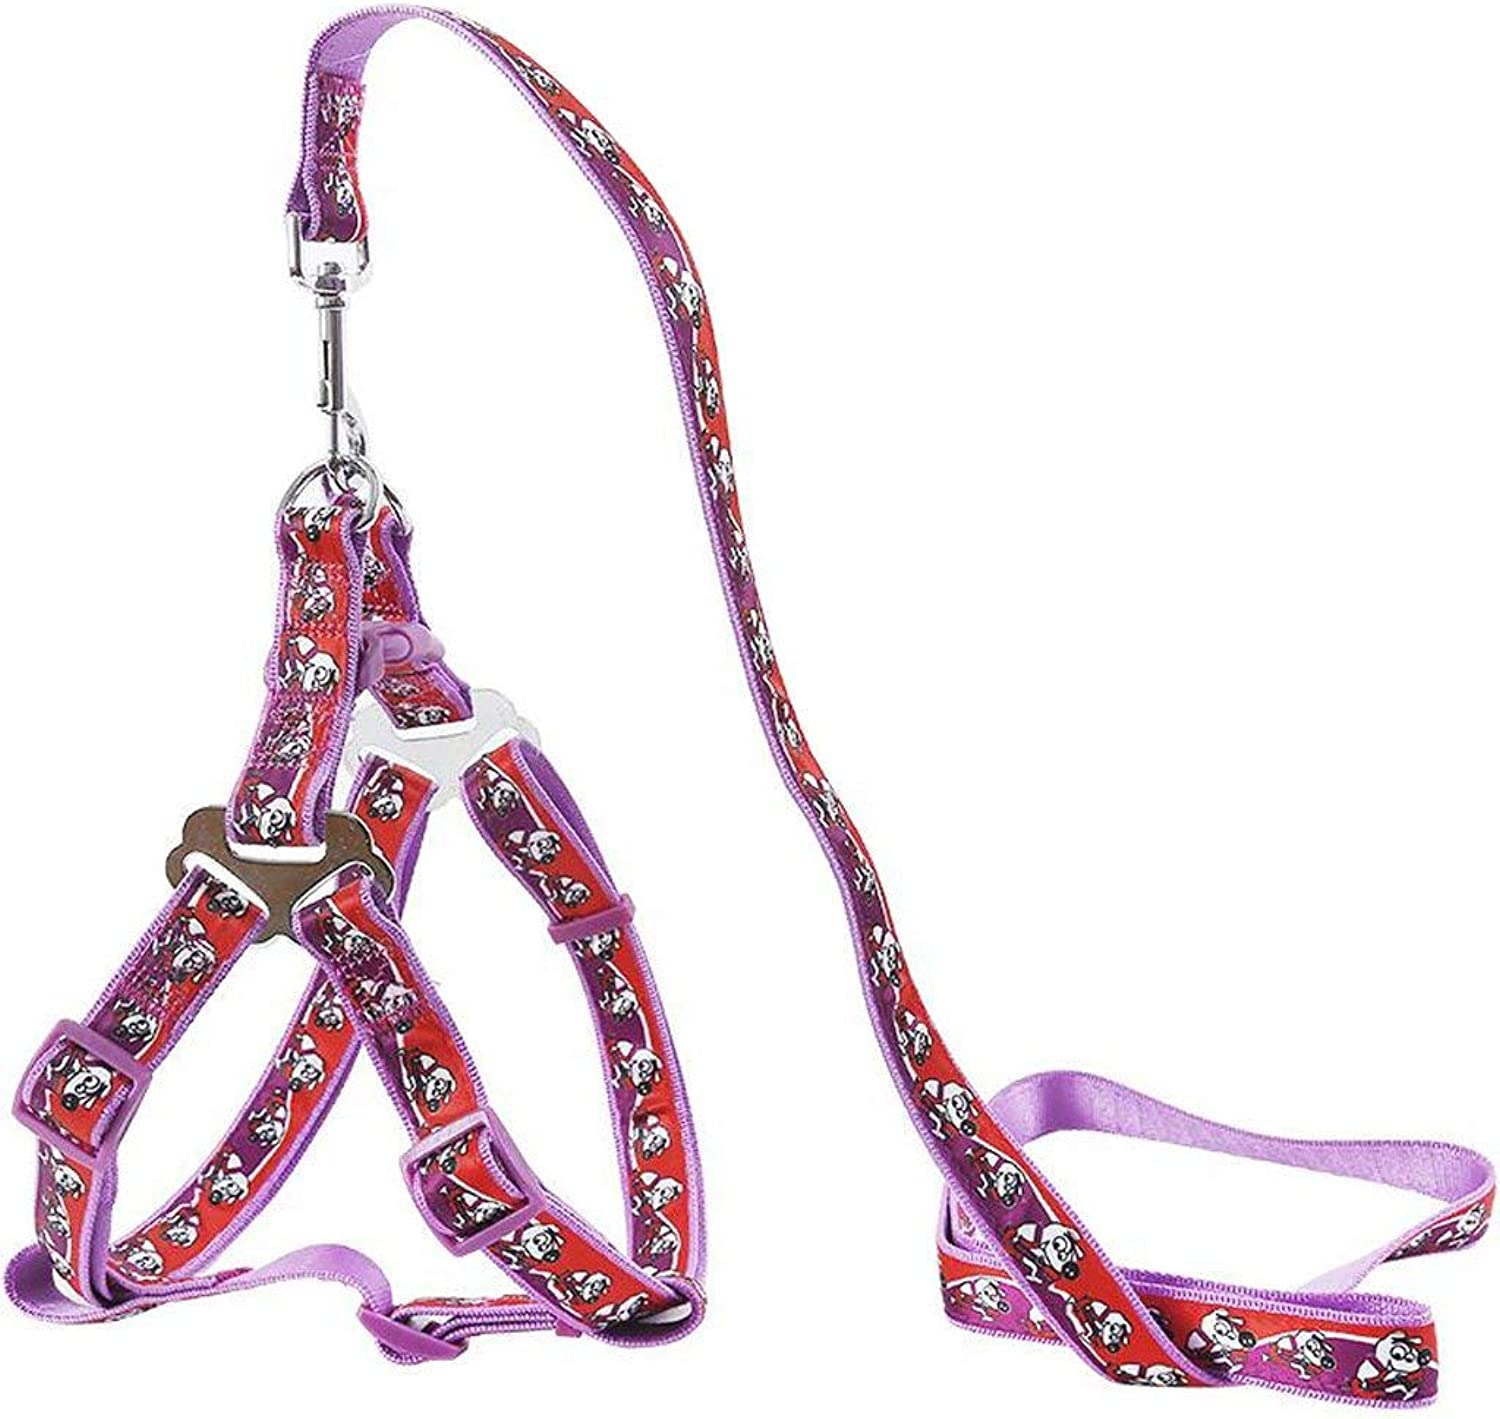 Dog Chain, Dog Leash Pet Chain Nylon Weave Outdoor Sports Training Traction Fashion Soft Comfortable Durable Multi color Optional (bluee Purple Red (color   Purple(A), Size   S)